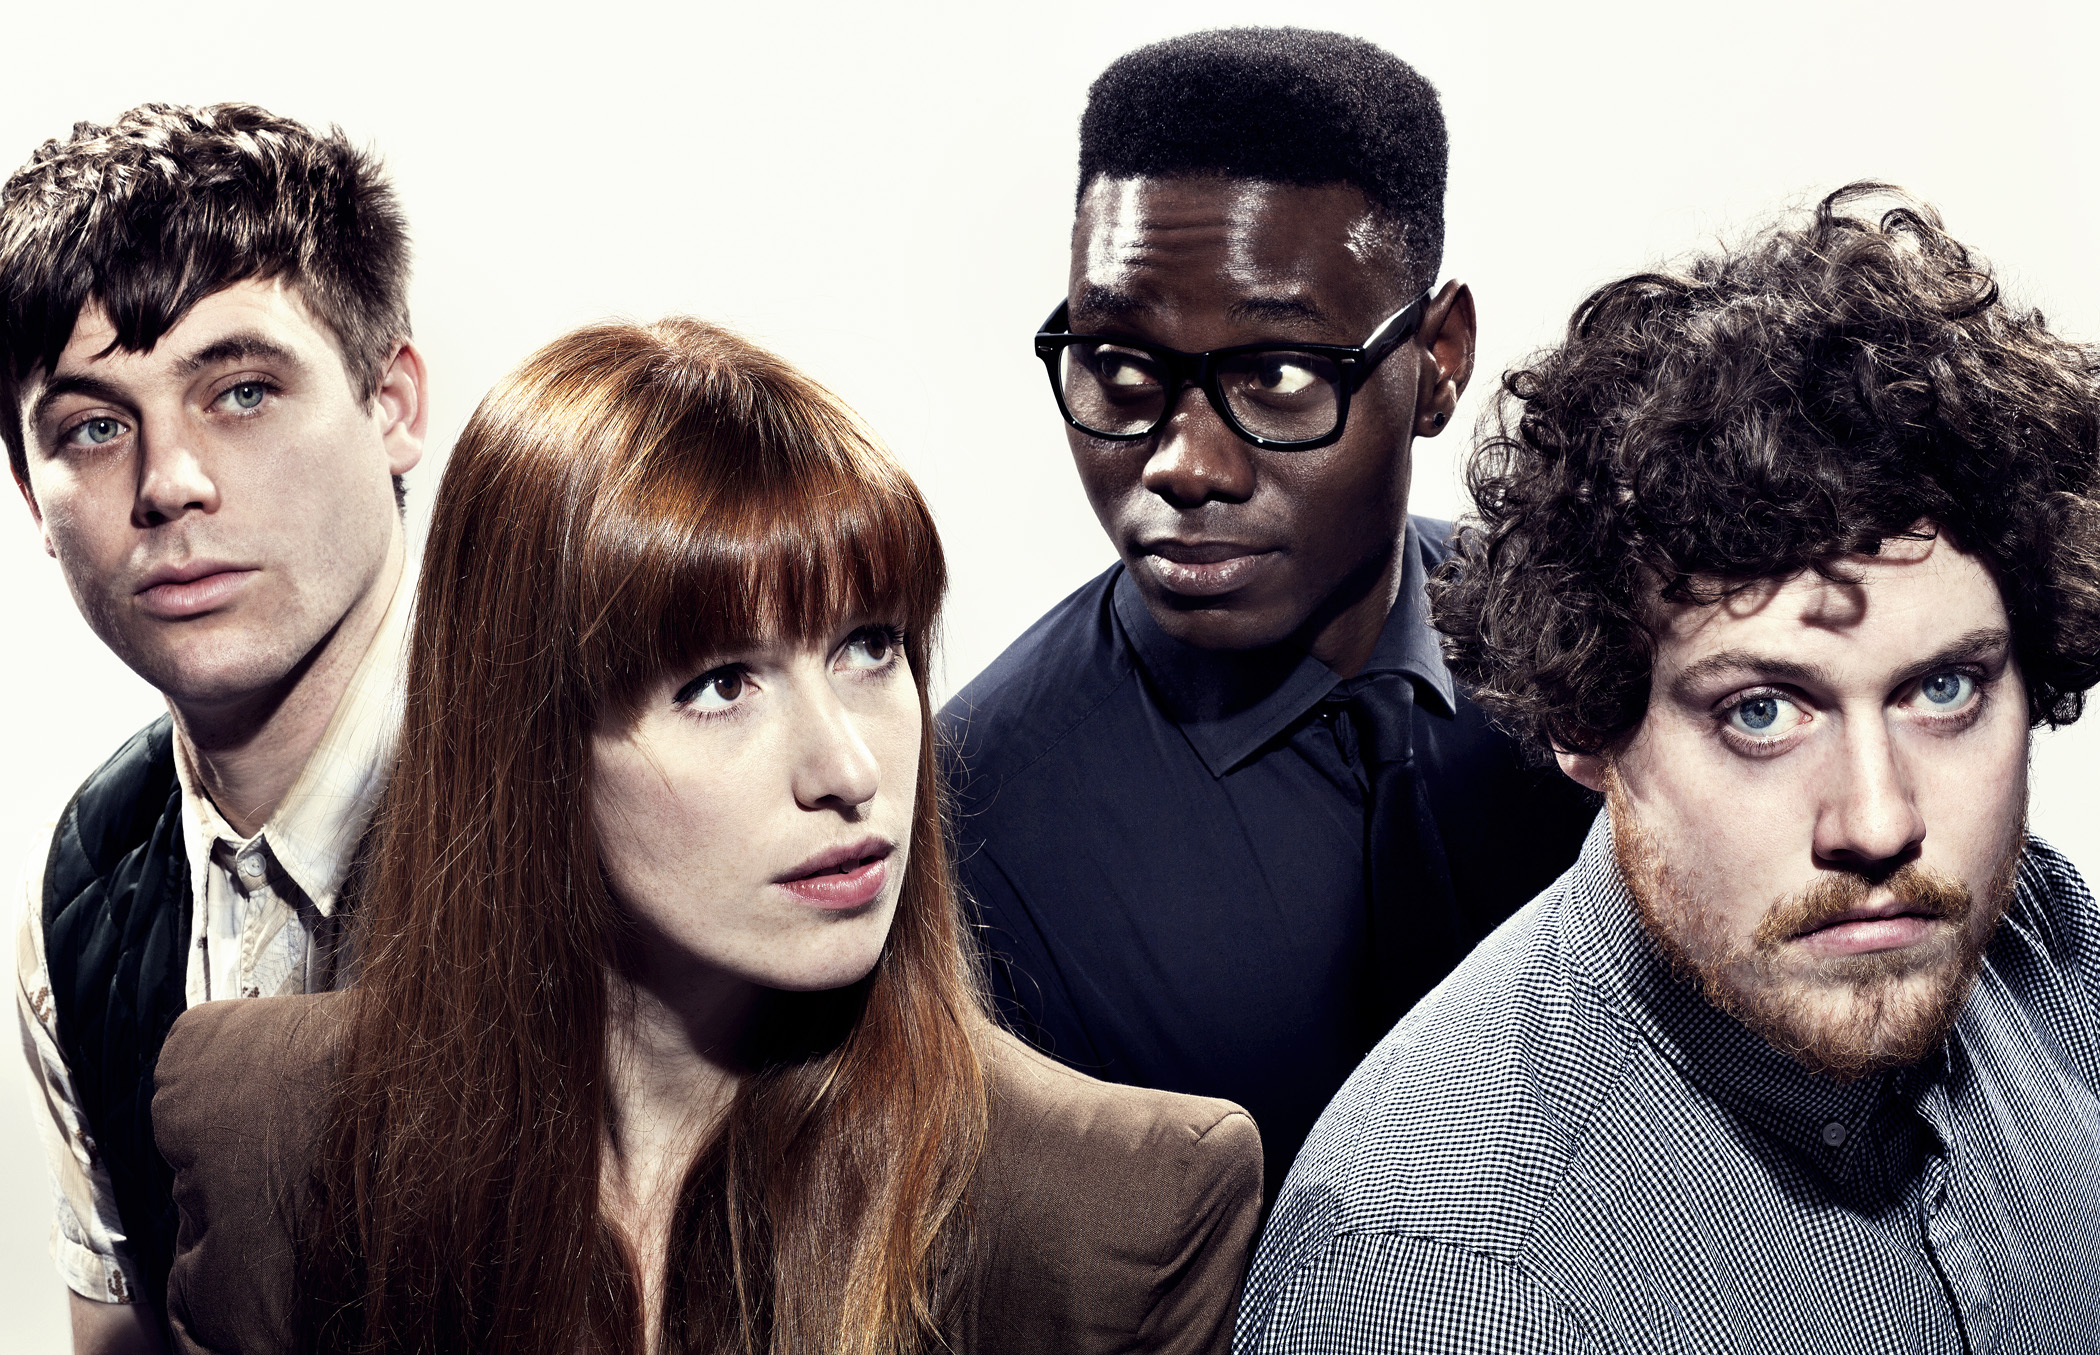 Metronomy is Oscar Cash, Anna Prior, Gbenga Adelekan, and Joseph Mount